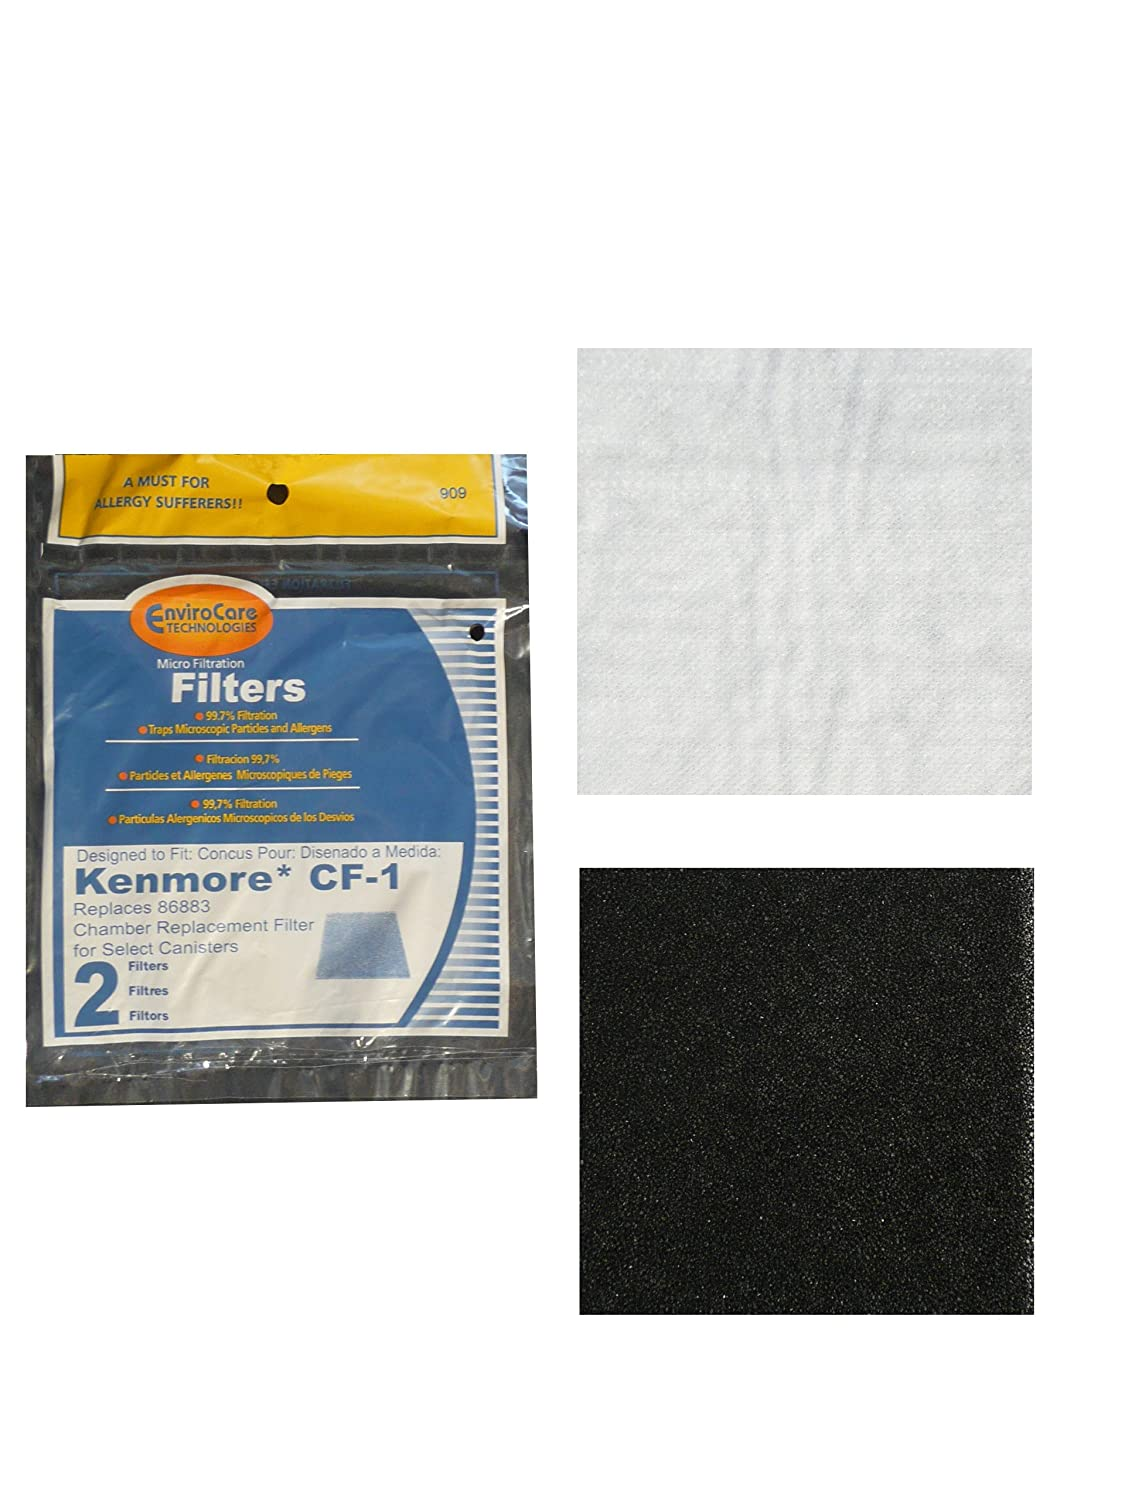 Kenmore Sears Progressive Foam Filter CF1, Progressive & Whispertone, Panasonic Vacuum Cleaners, 86883, 86880, 20-86883, 208 (2 Filters)